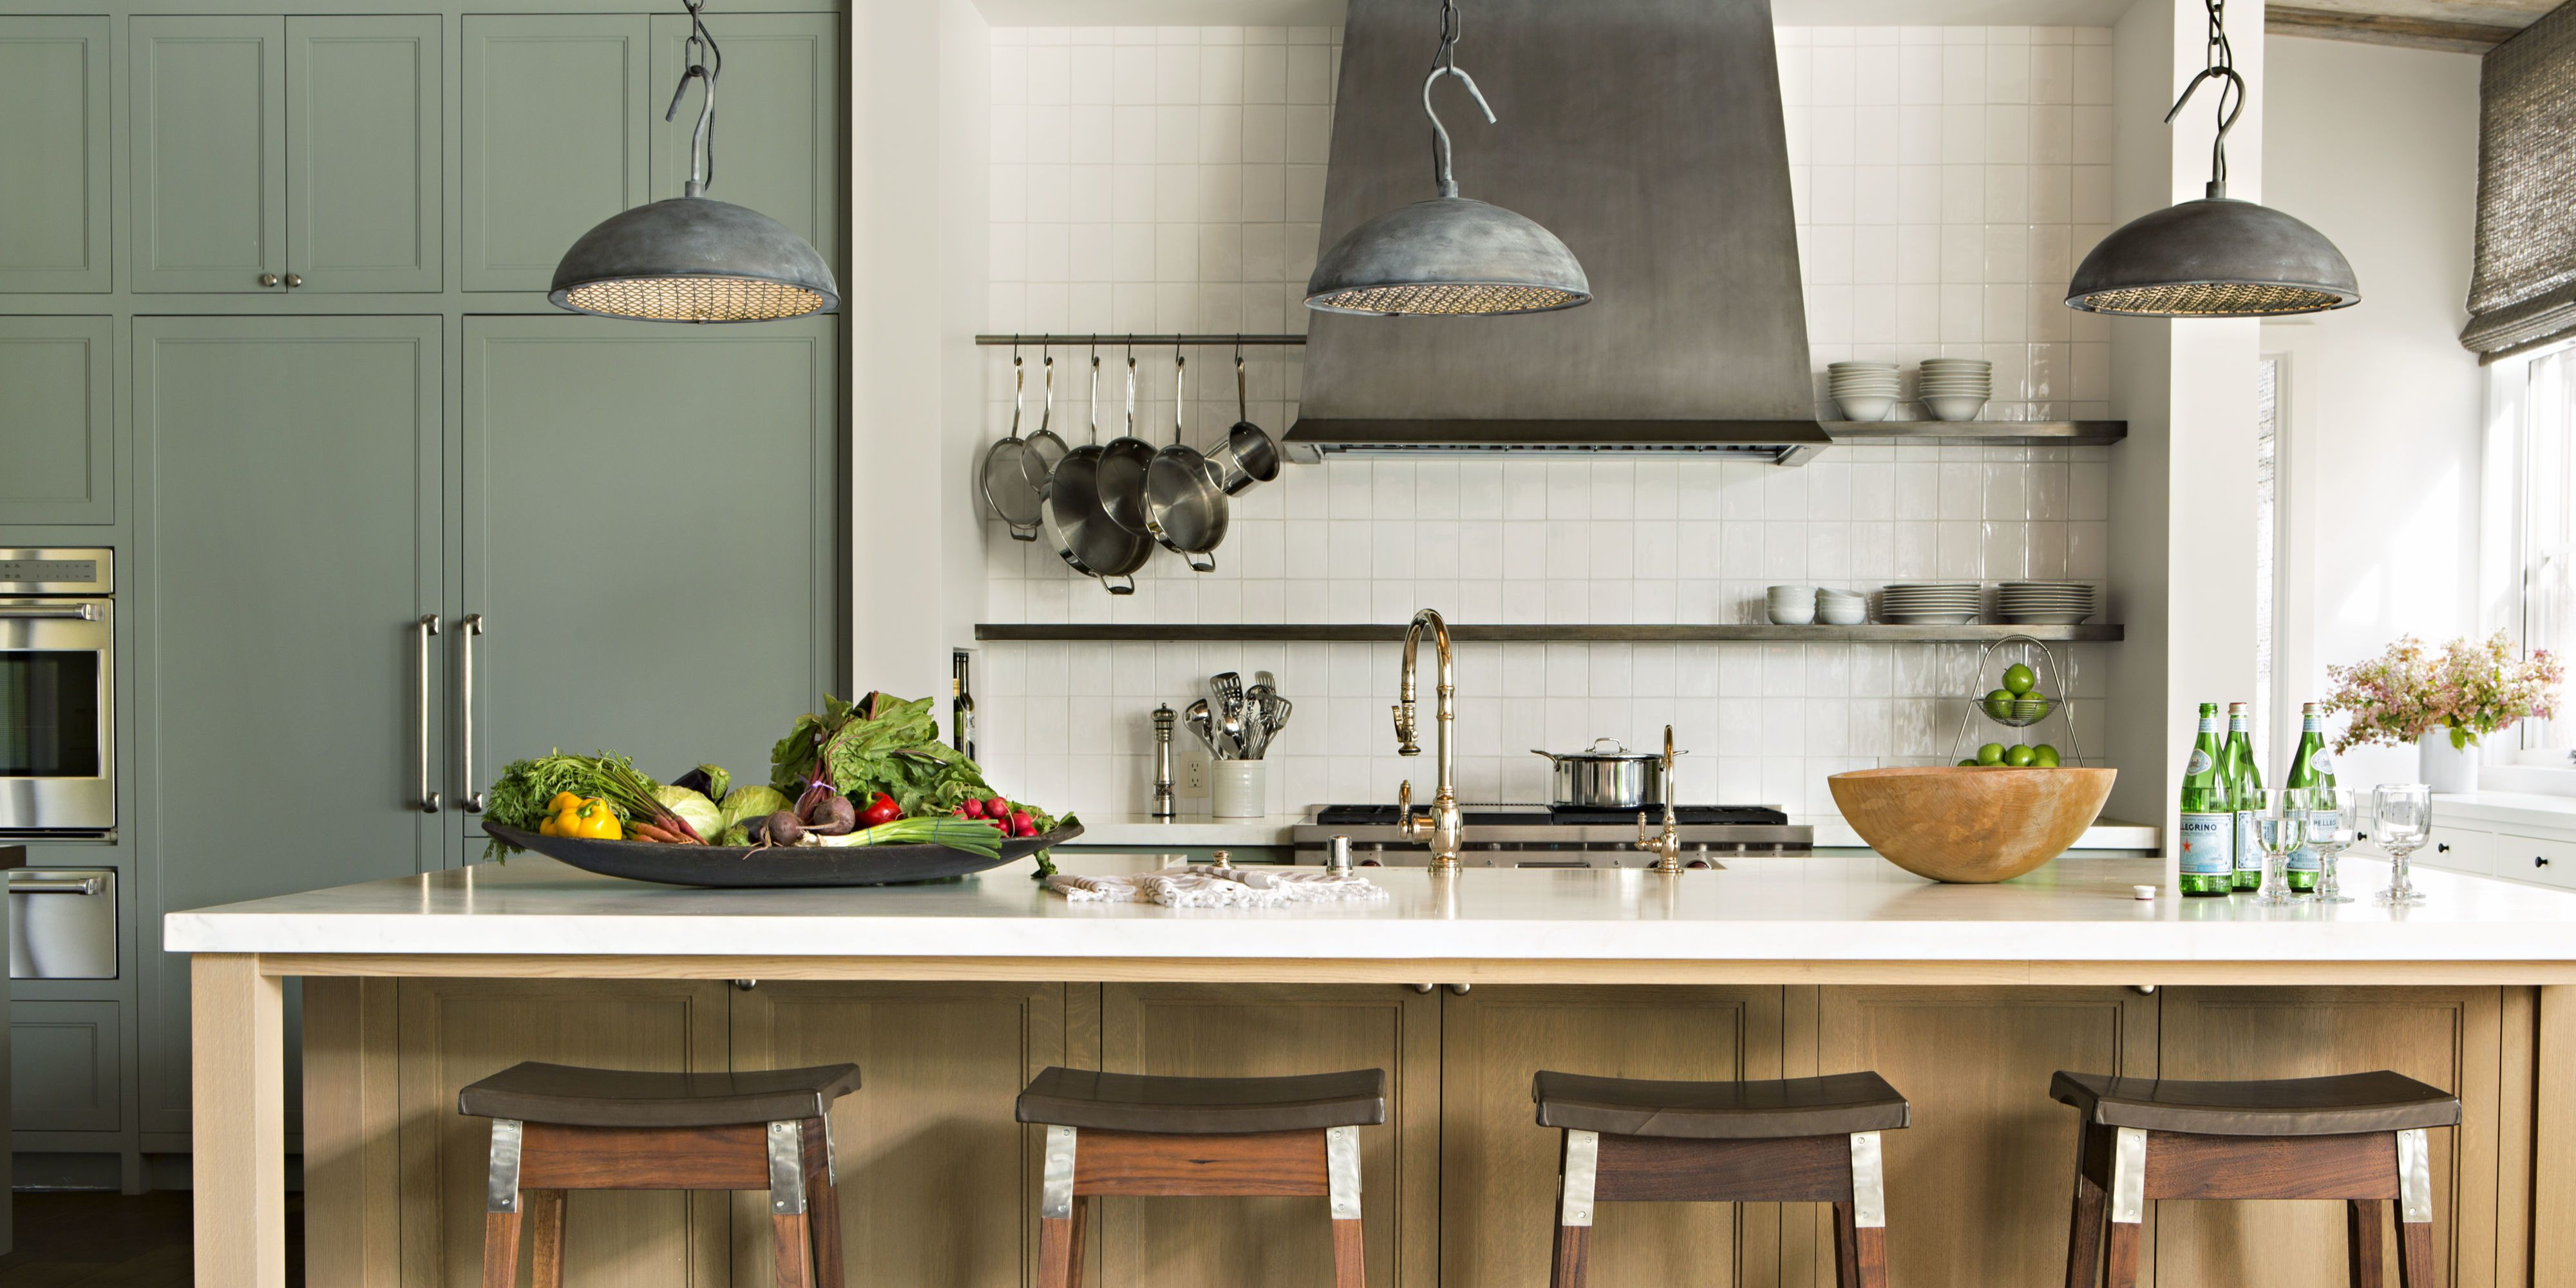 lighting ideas for kitchen image YJBQNCL